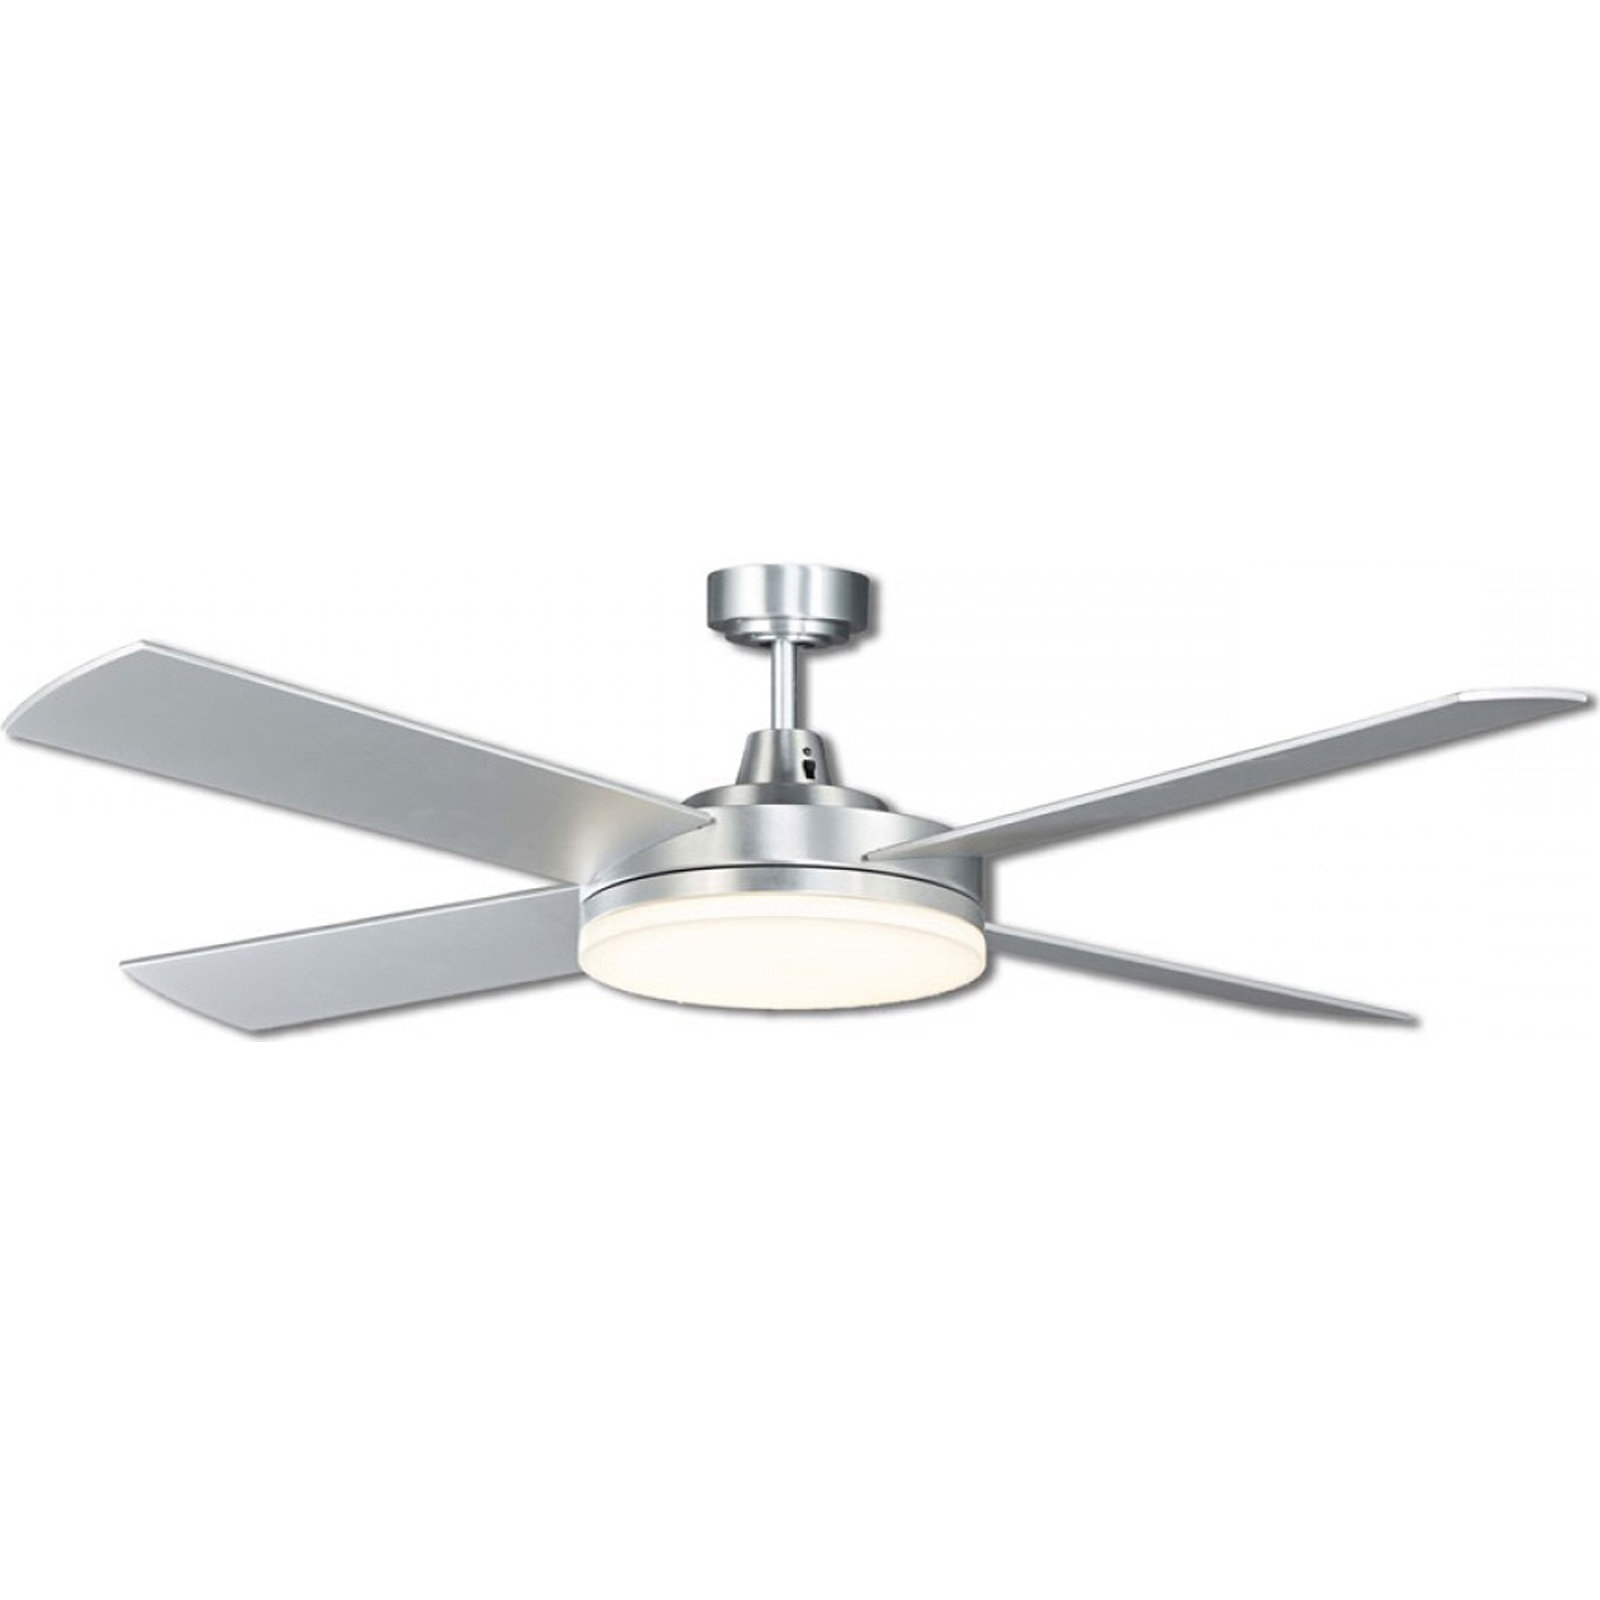 Preferred Outdoor Ceiling Fans With Led Lights Regarding Low Profile Outdoor Ceiling Fans With Lights (View 18 of 20)